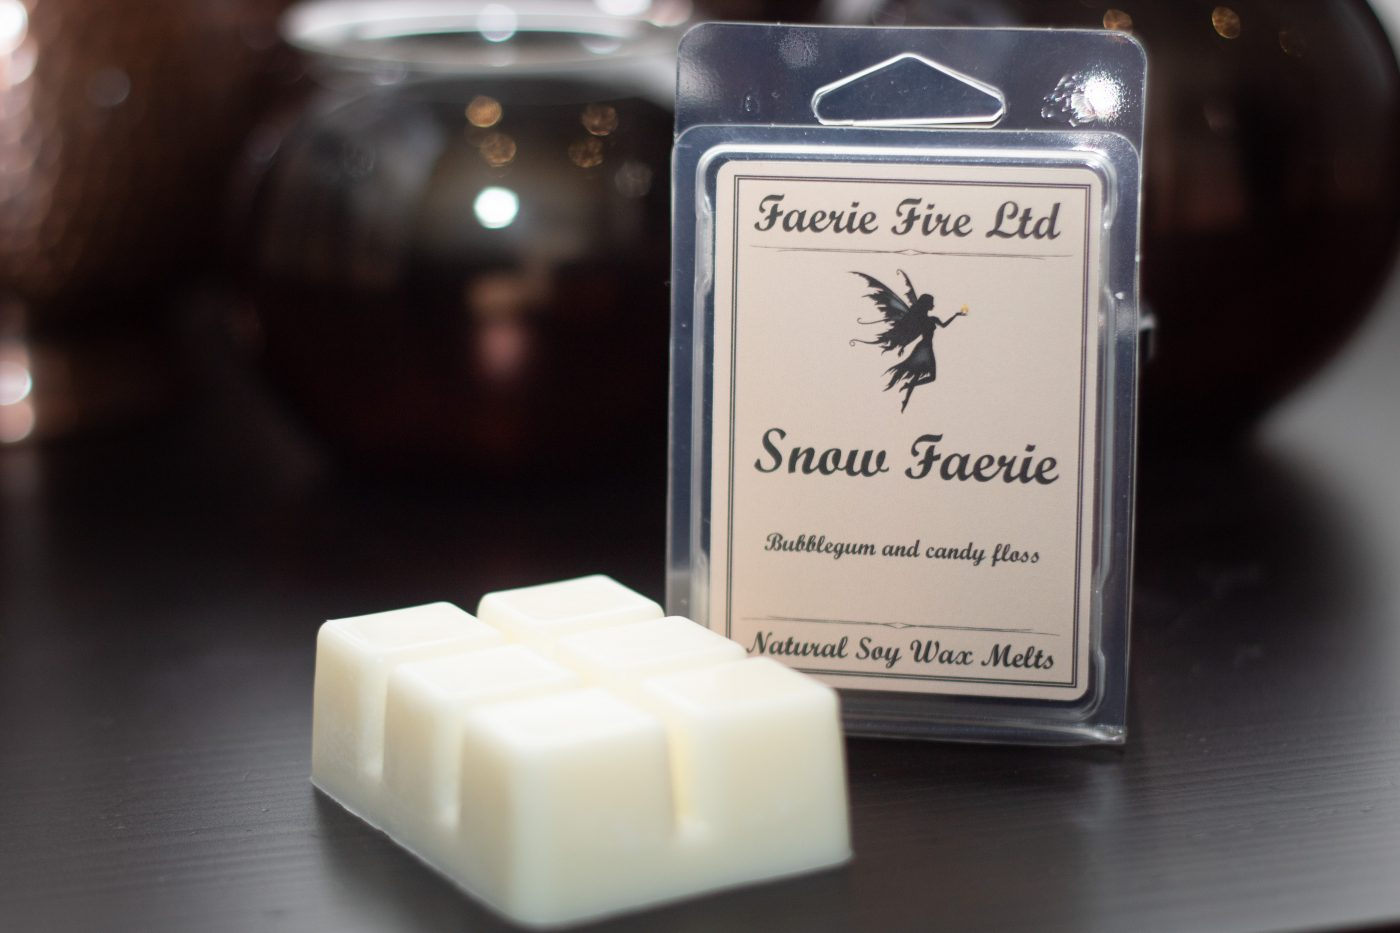 Snow Faerie Wax Melt Clam Shell 1 scaled